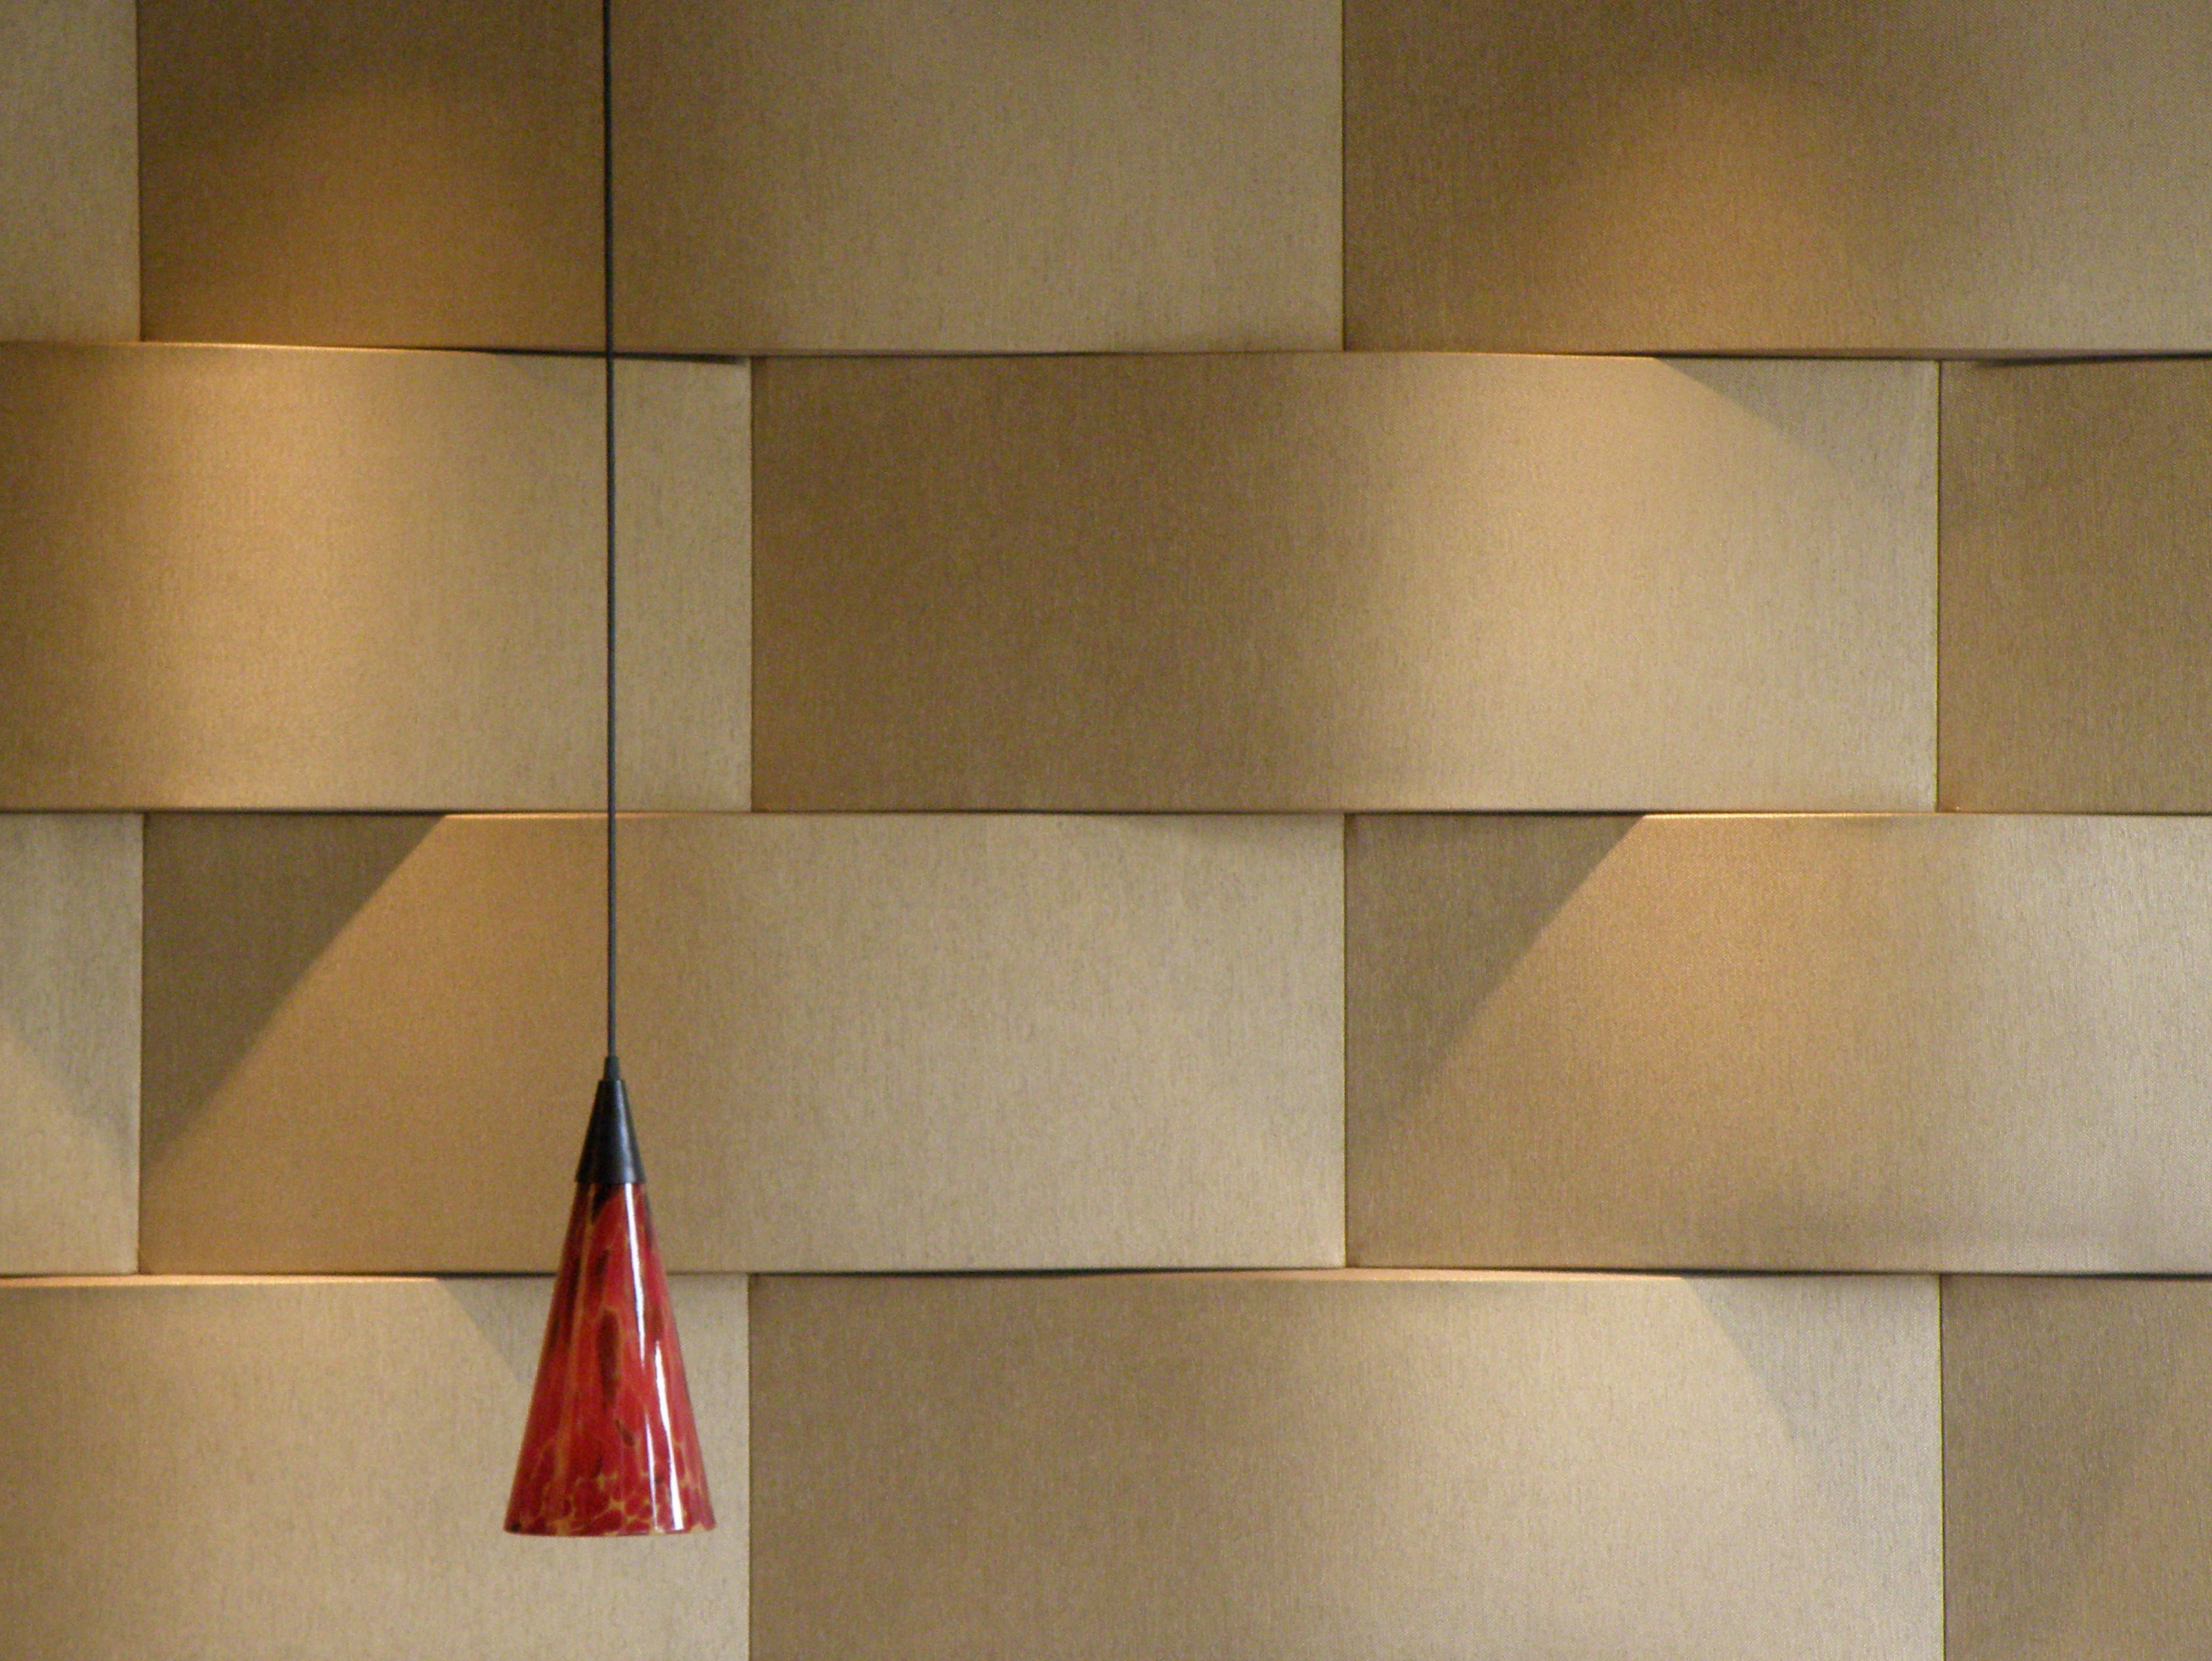 fabric wall concepts - Fabric Wall Panels